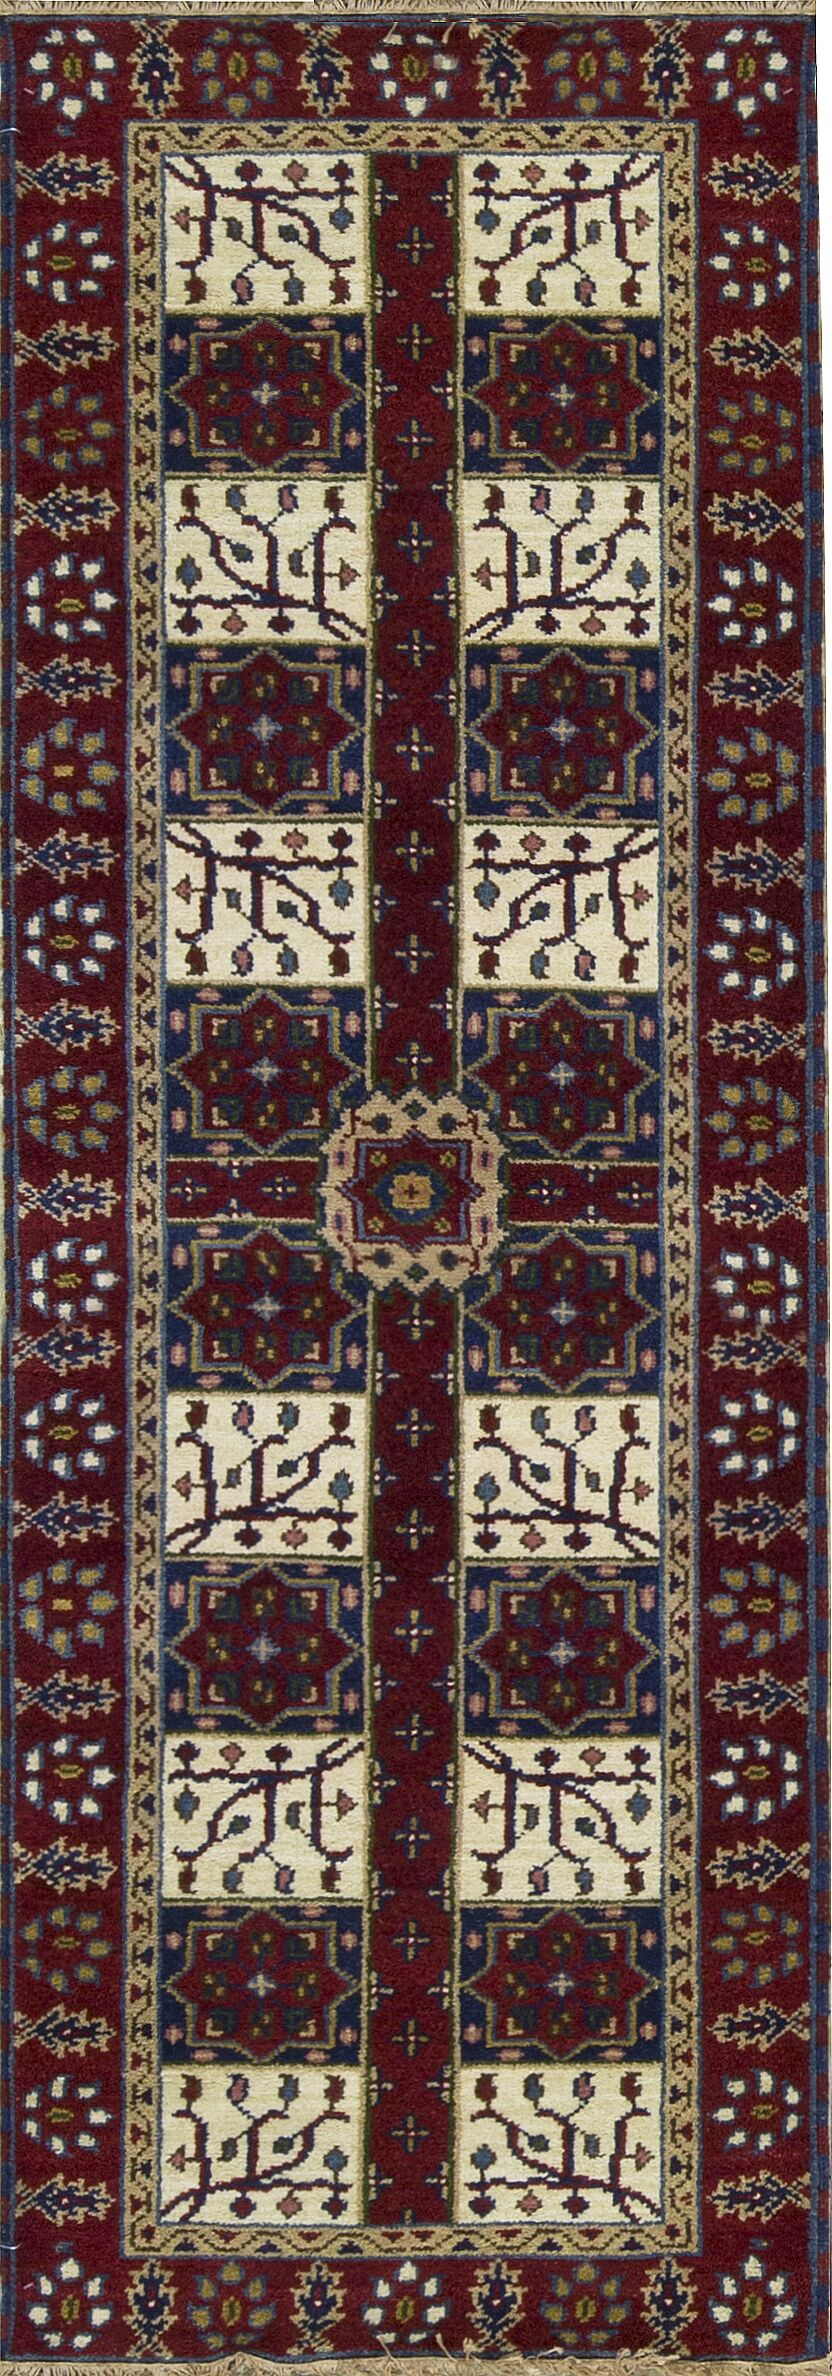 One-of-a-Kind Kazak Hand-Knotted Wool Ivory/Red Indoor Area Rug